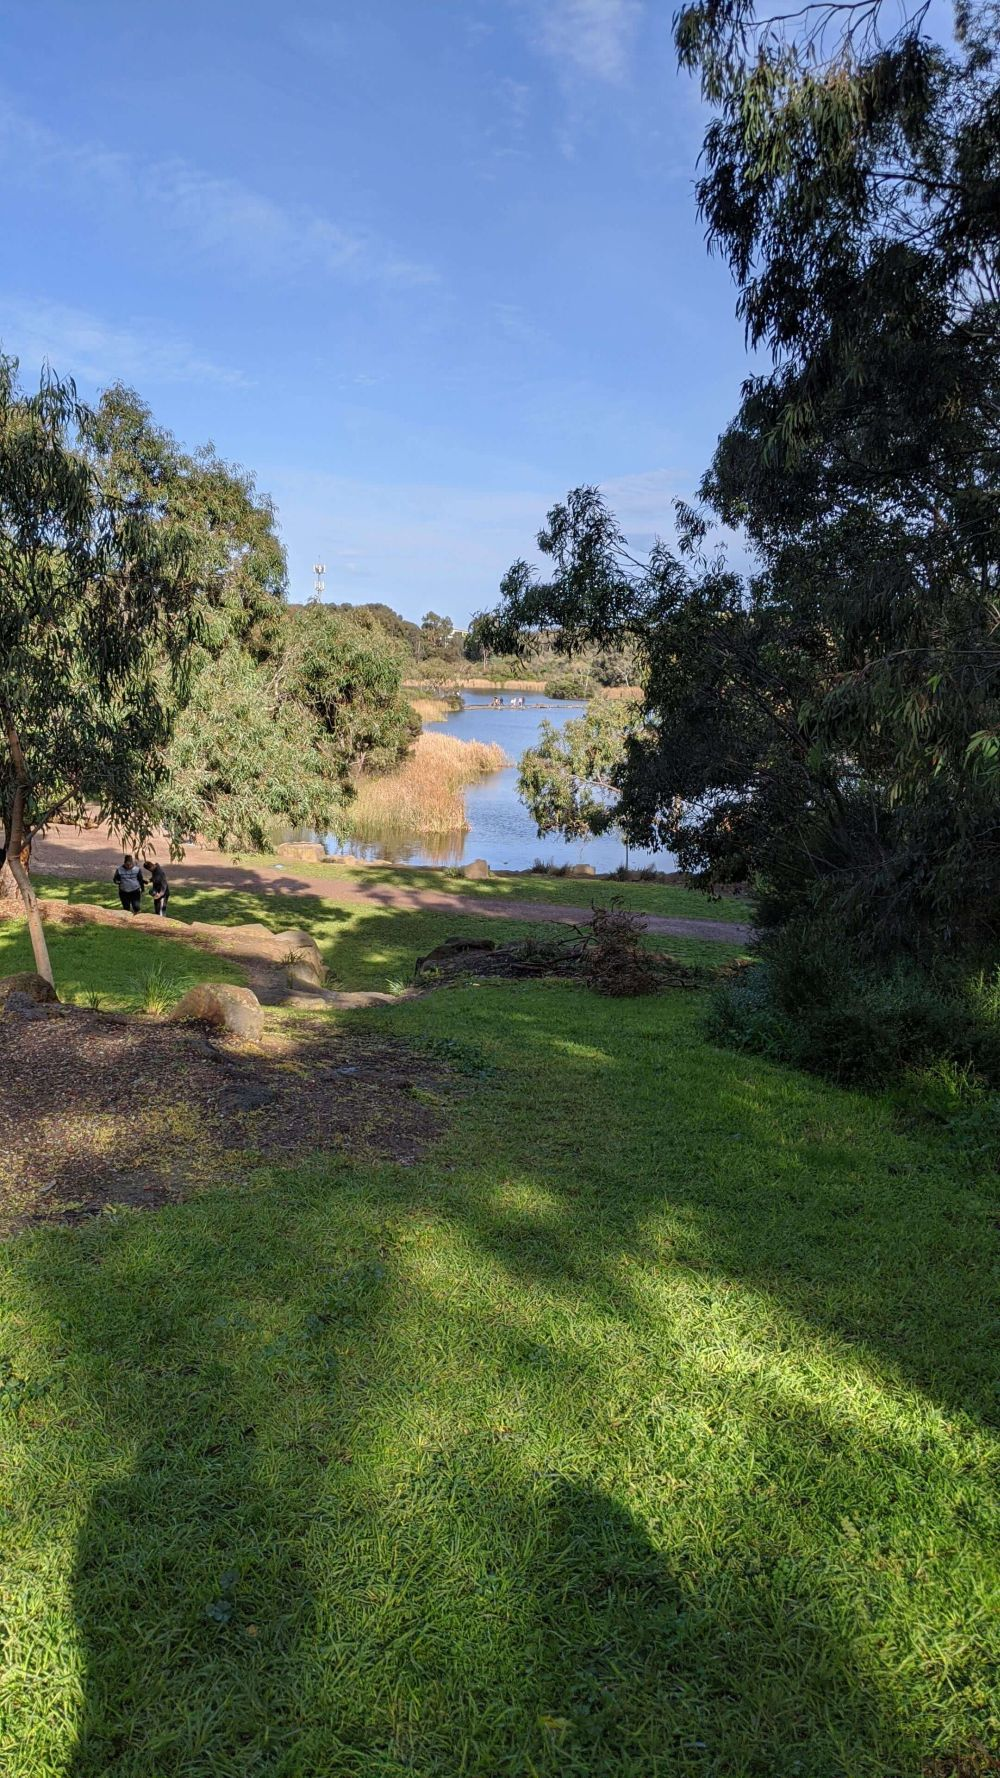 Newport Lakes bush setting with 2 lakes. Plenty of grassy picnic space. Hill Tribe Travels visited Newport Lakes